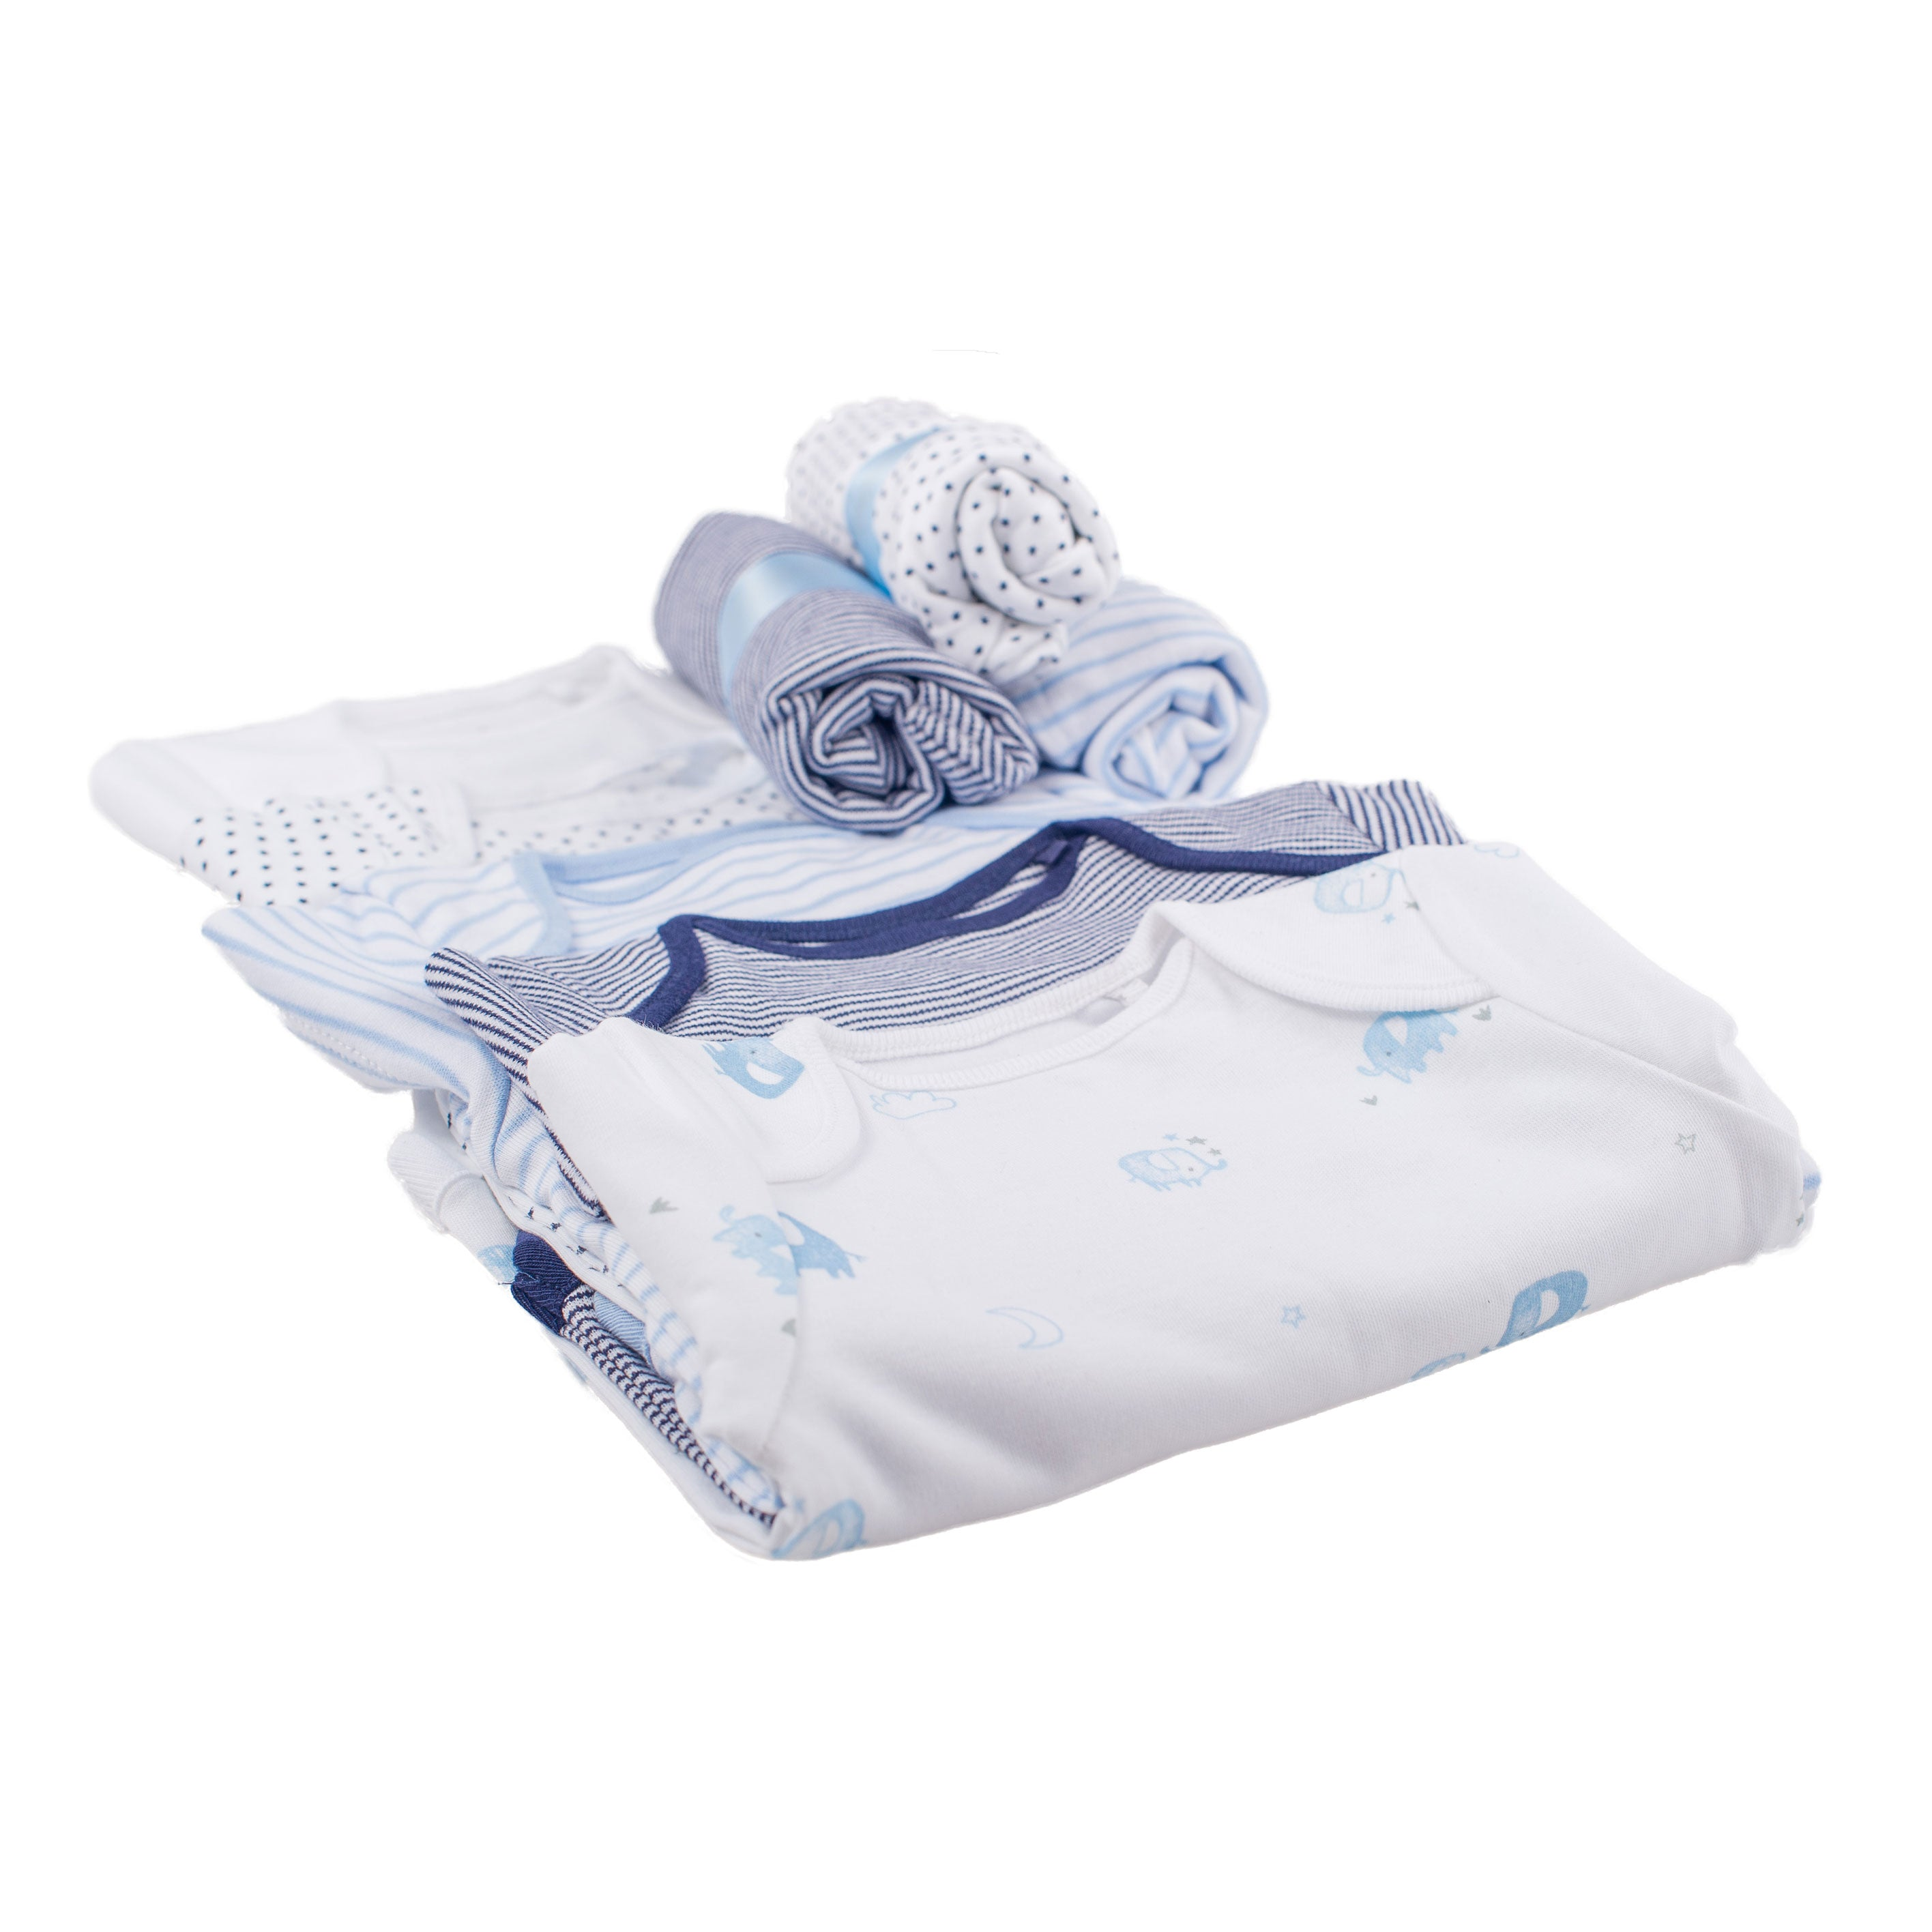 Baby Wear & Play Box - Blue